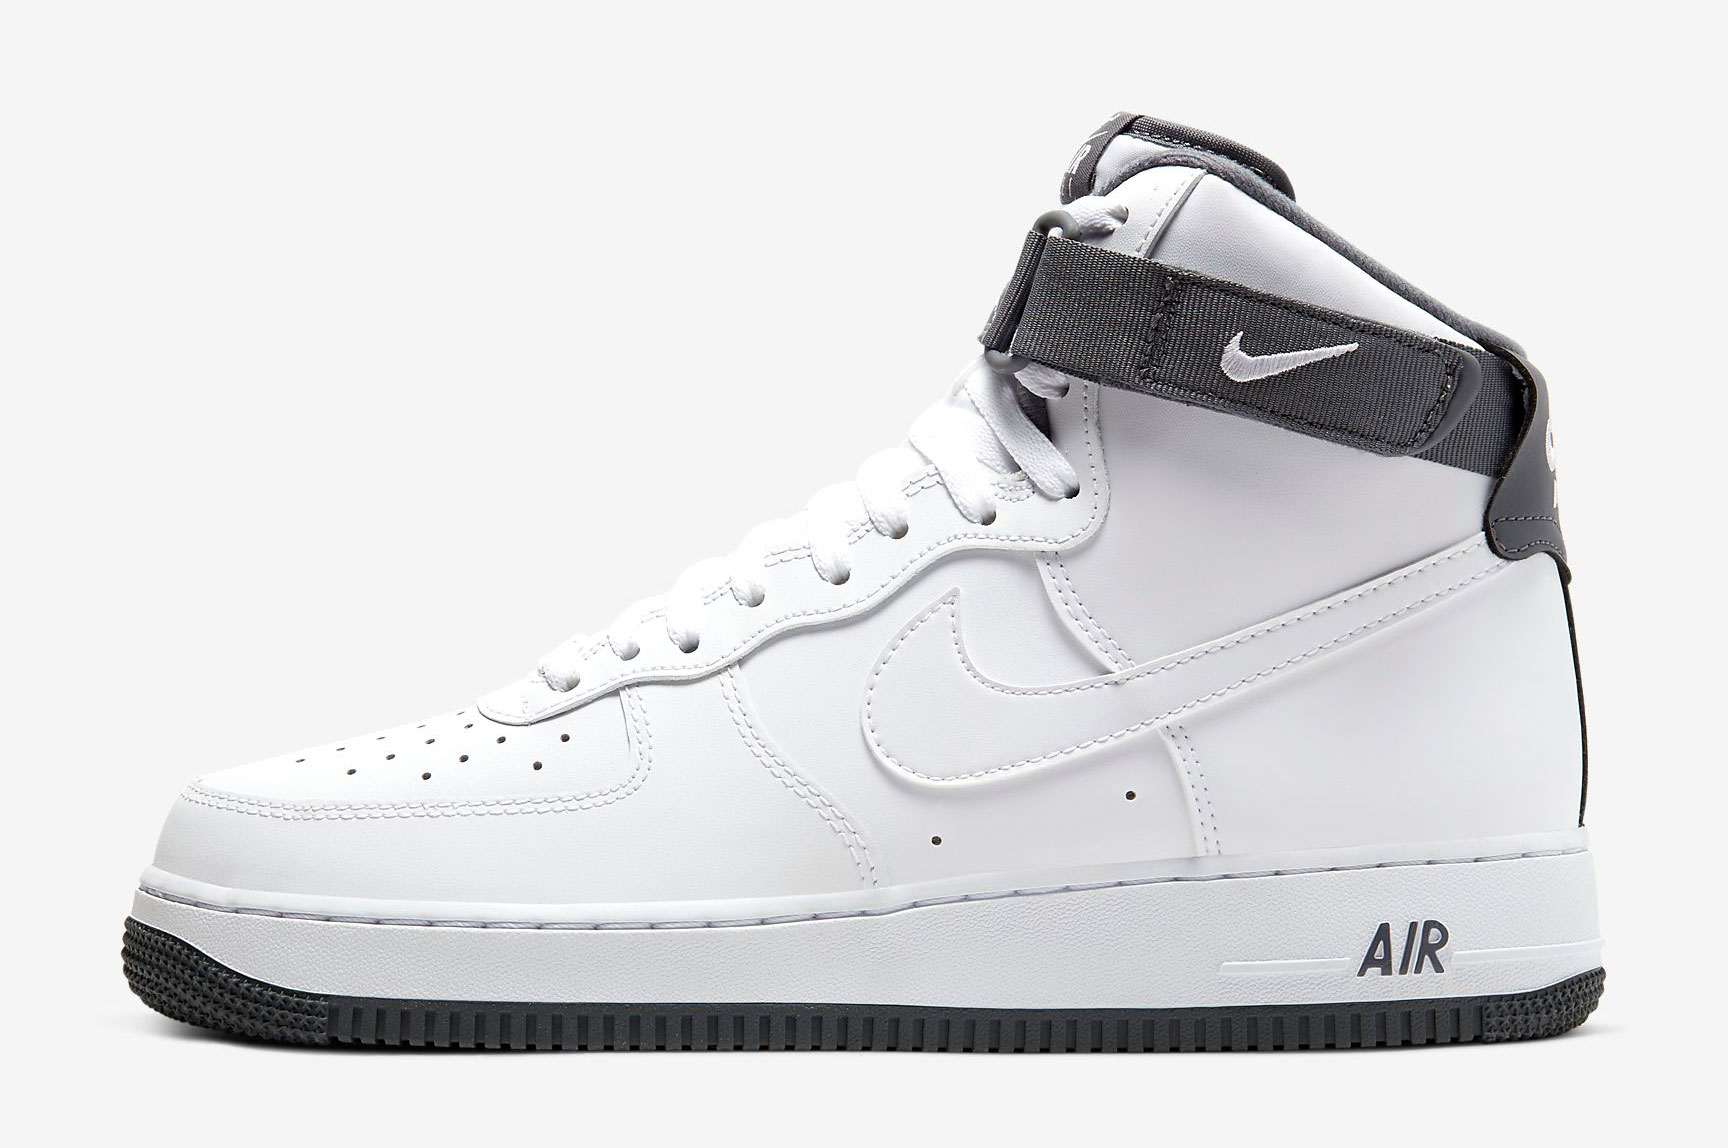 nike-air-force-1-high-white-dark-grey-release-date